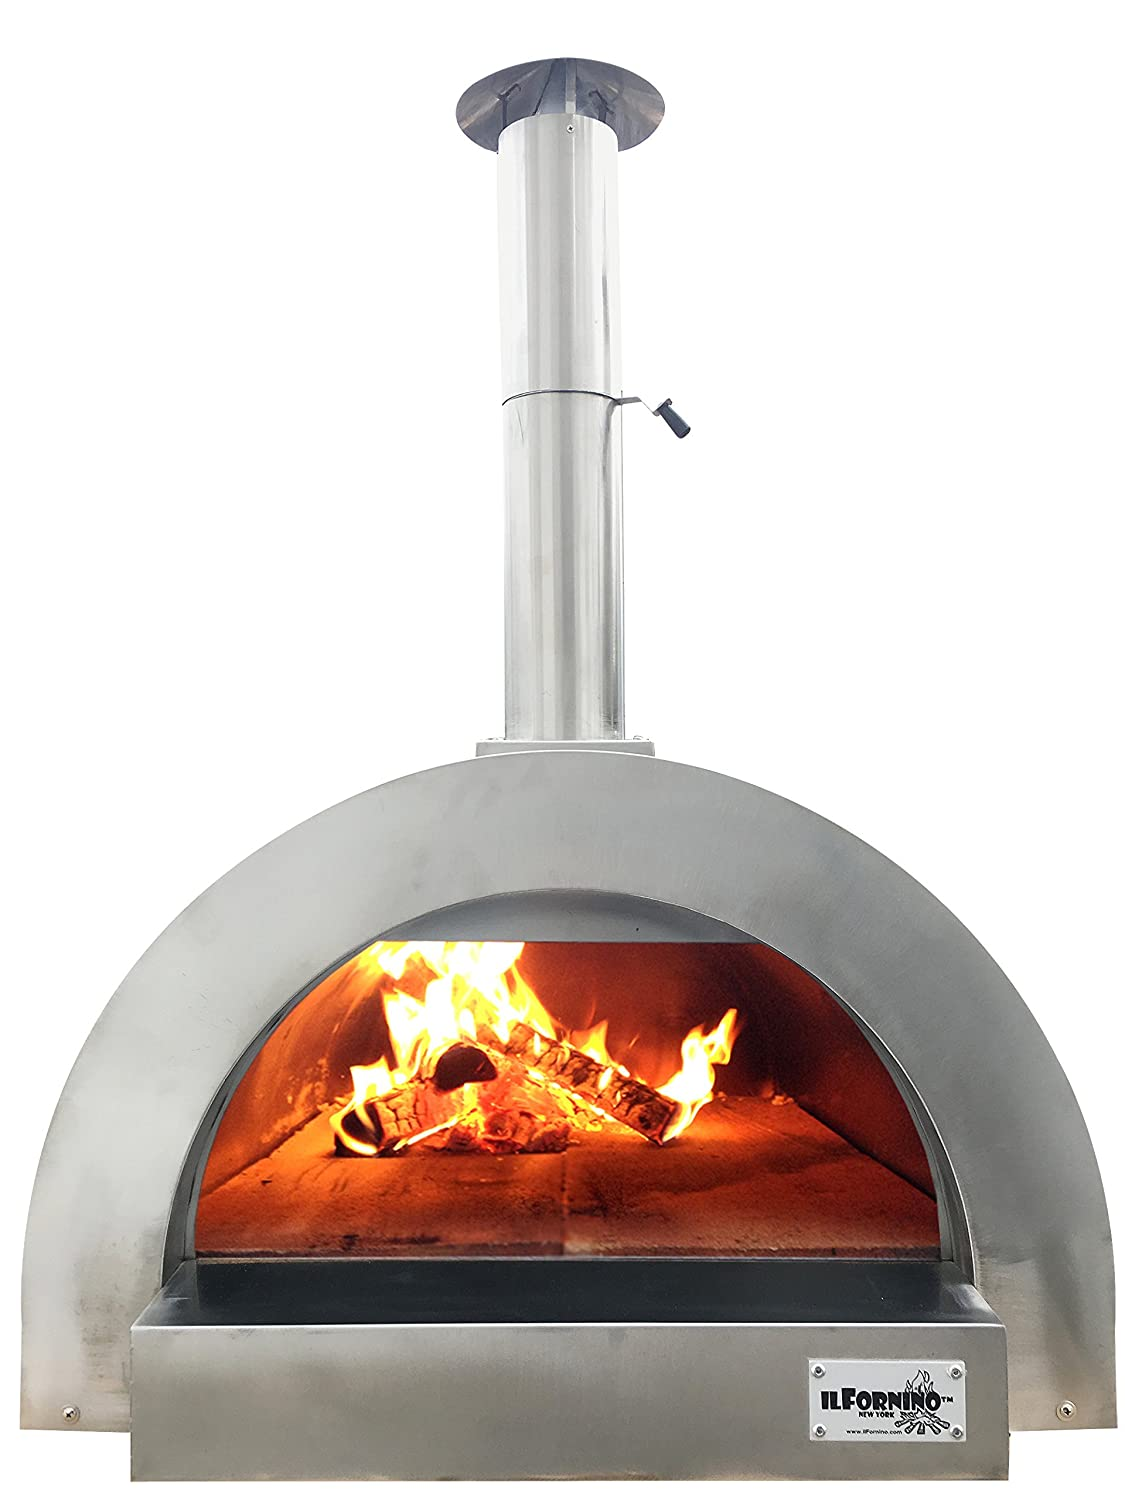 ilFornino F- Series Mini Wood Fired Pizza Oven- Portable Stainless Steel